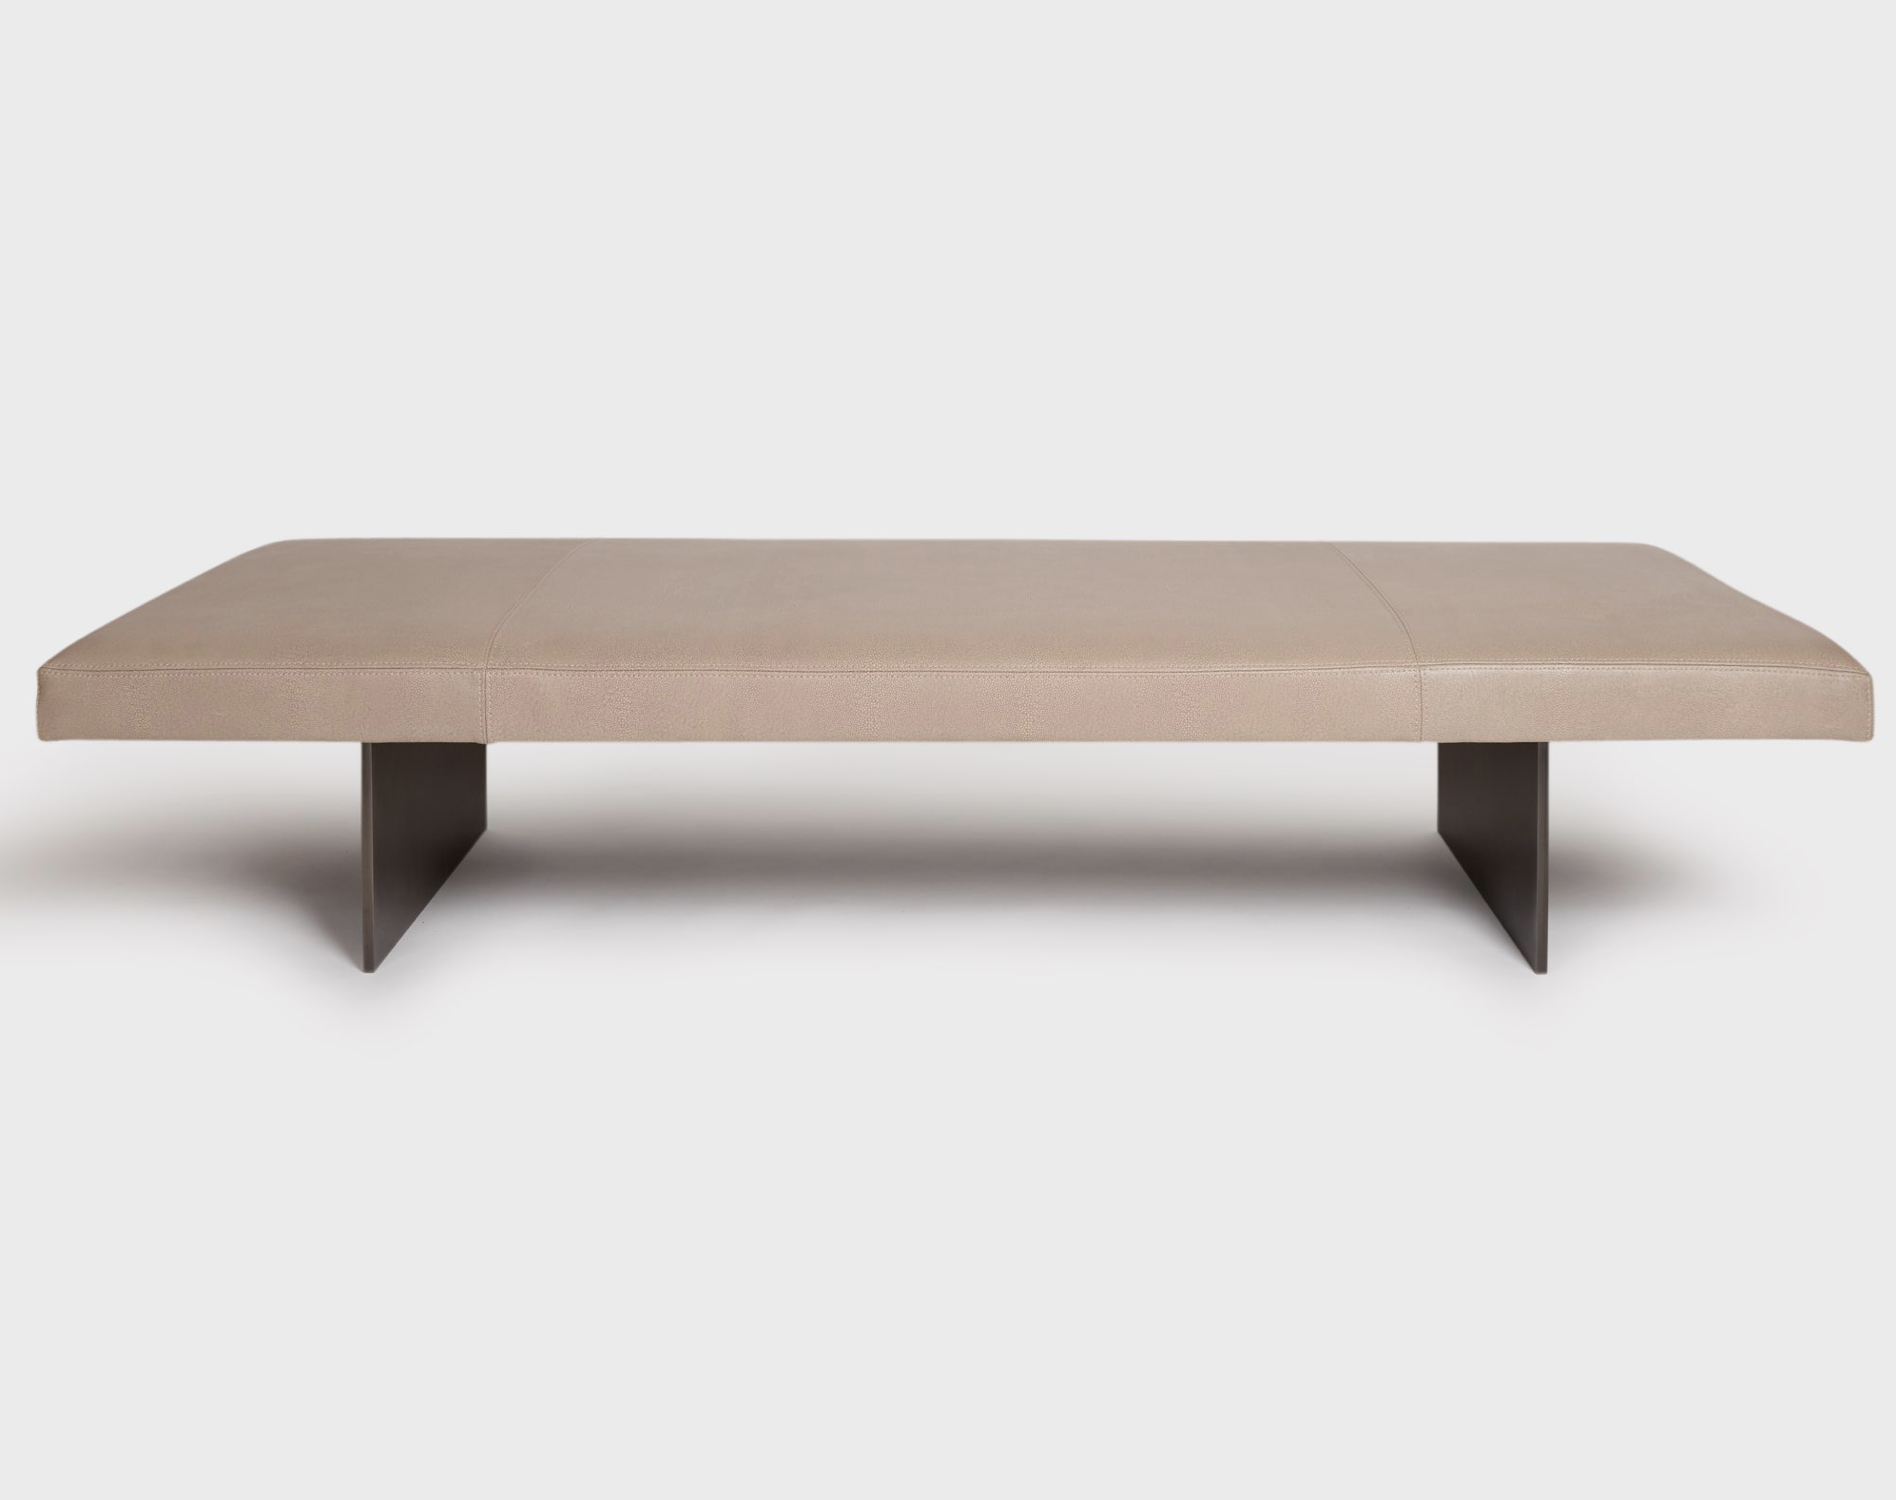 Aguirre Design - Terra Bench3.png